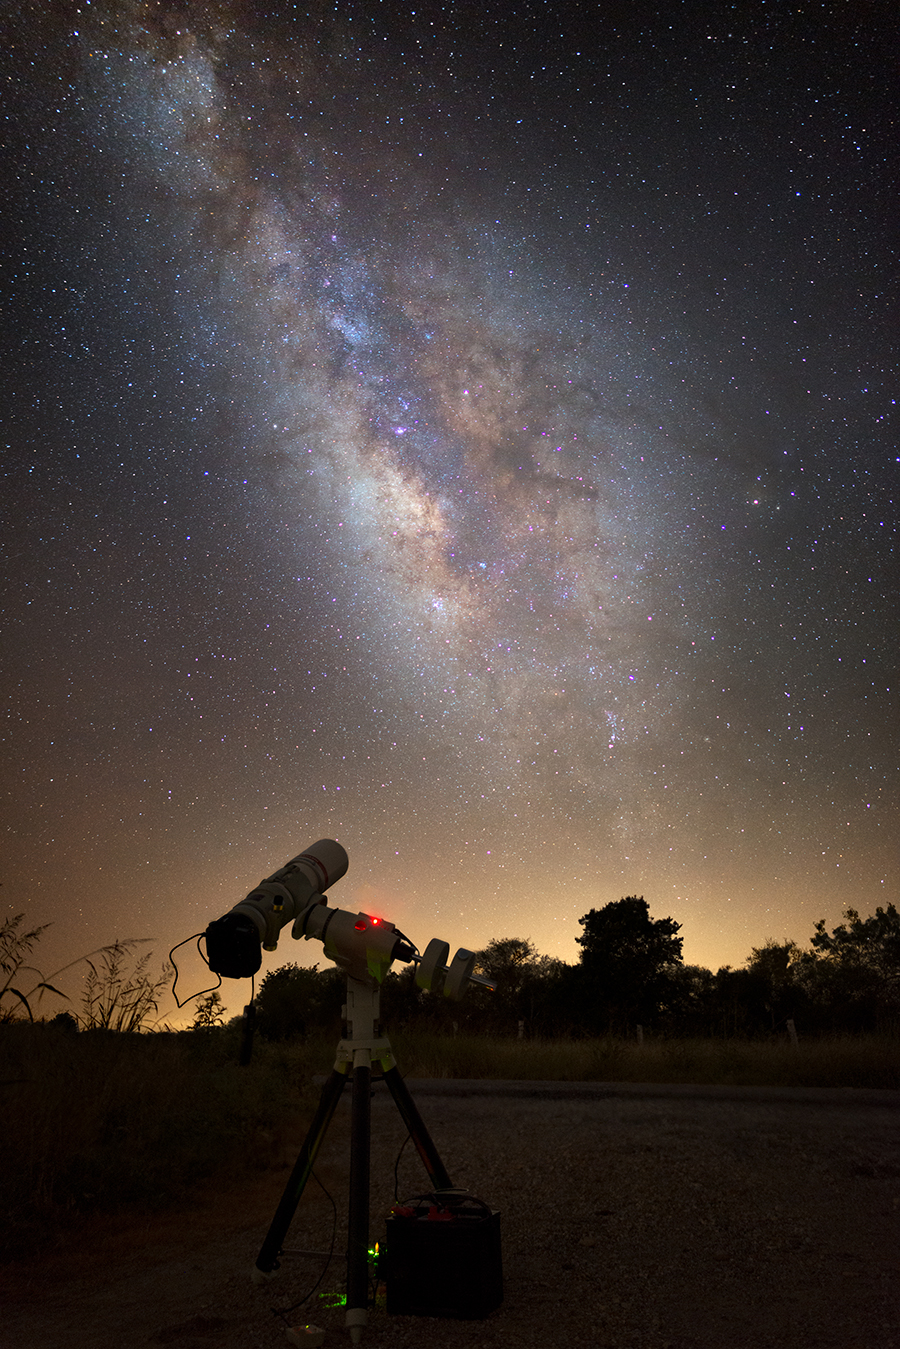 The FSQ-106EDX4 under the Milky Way